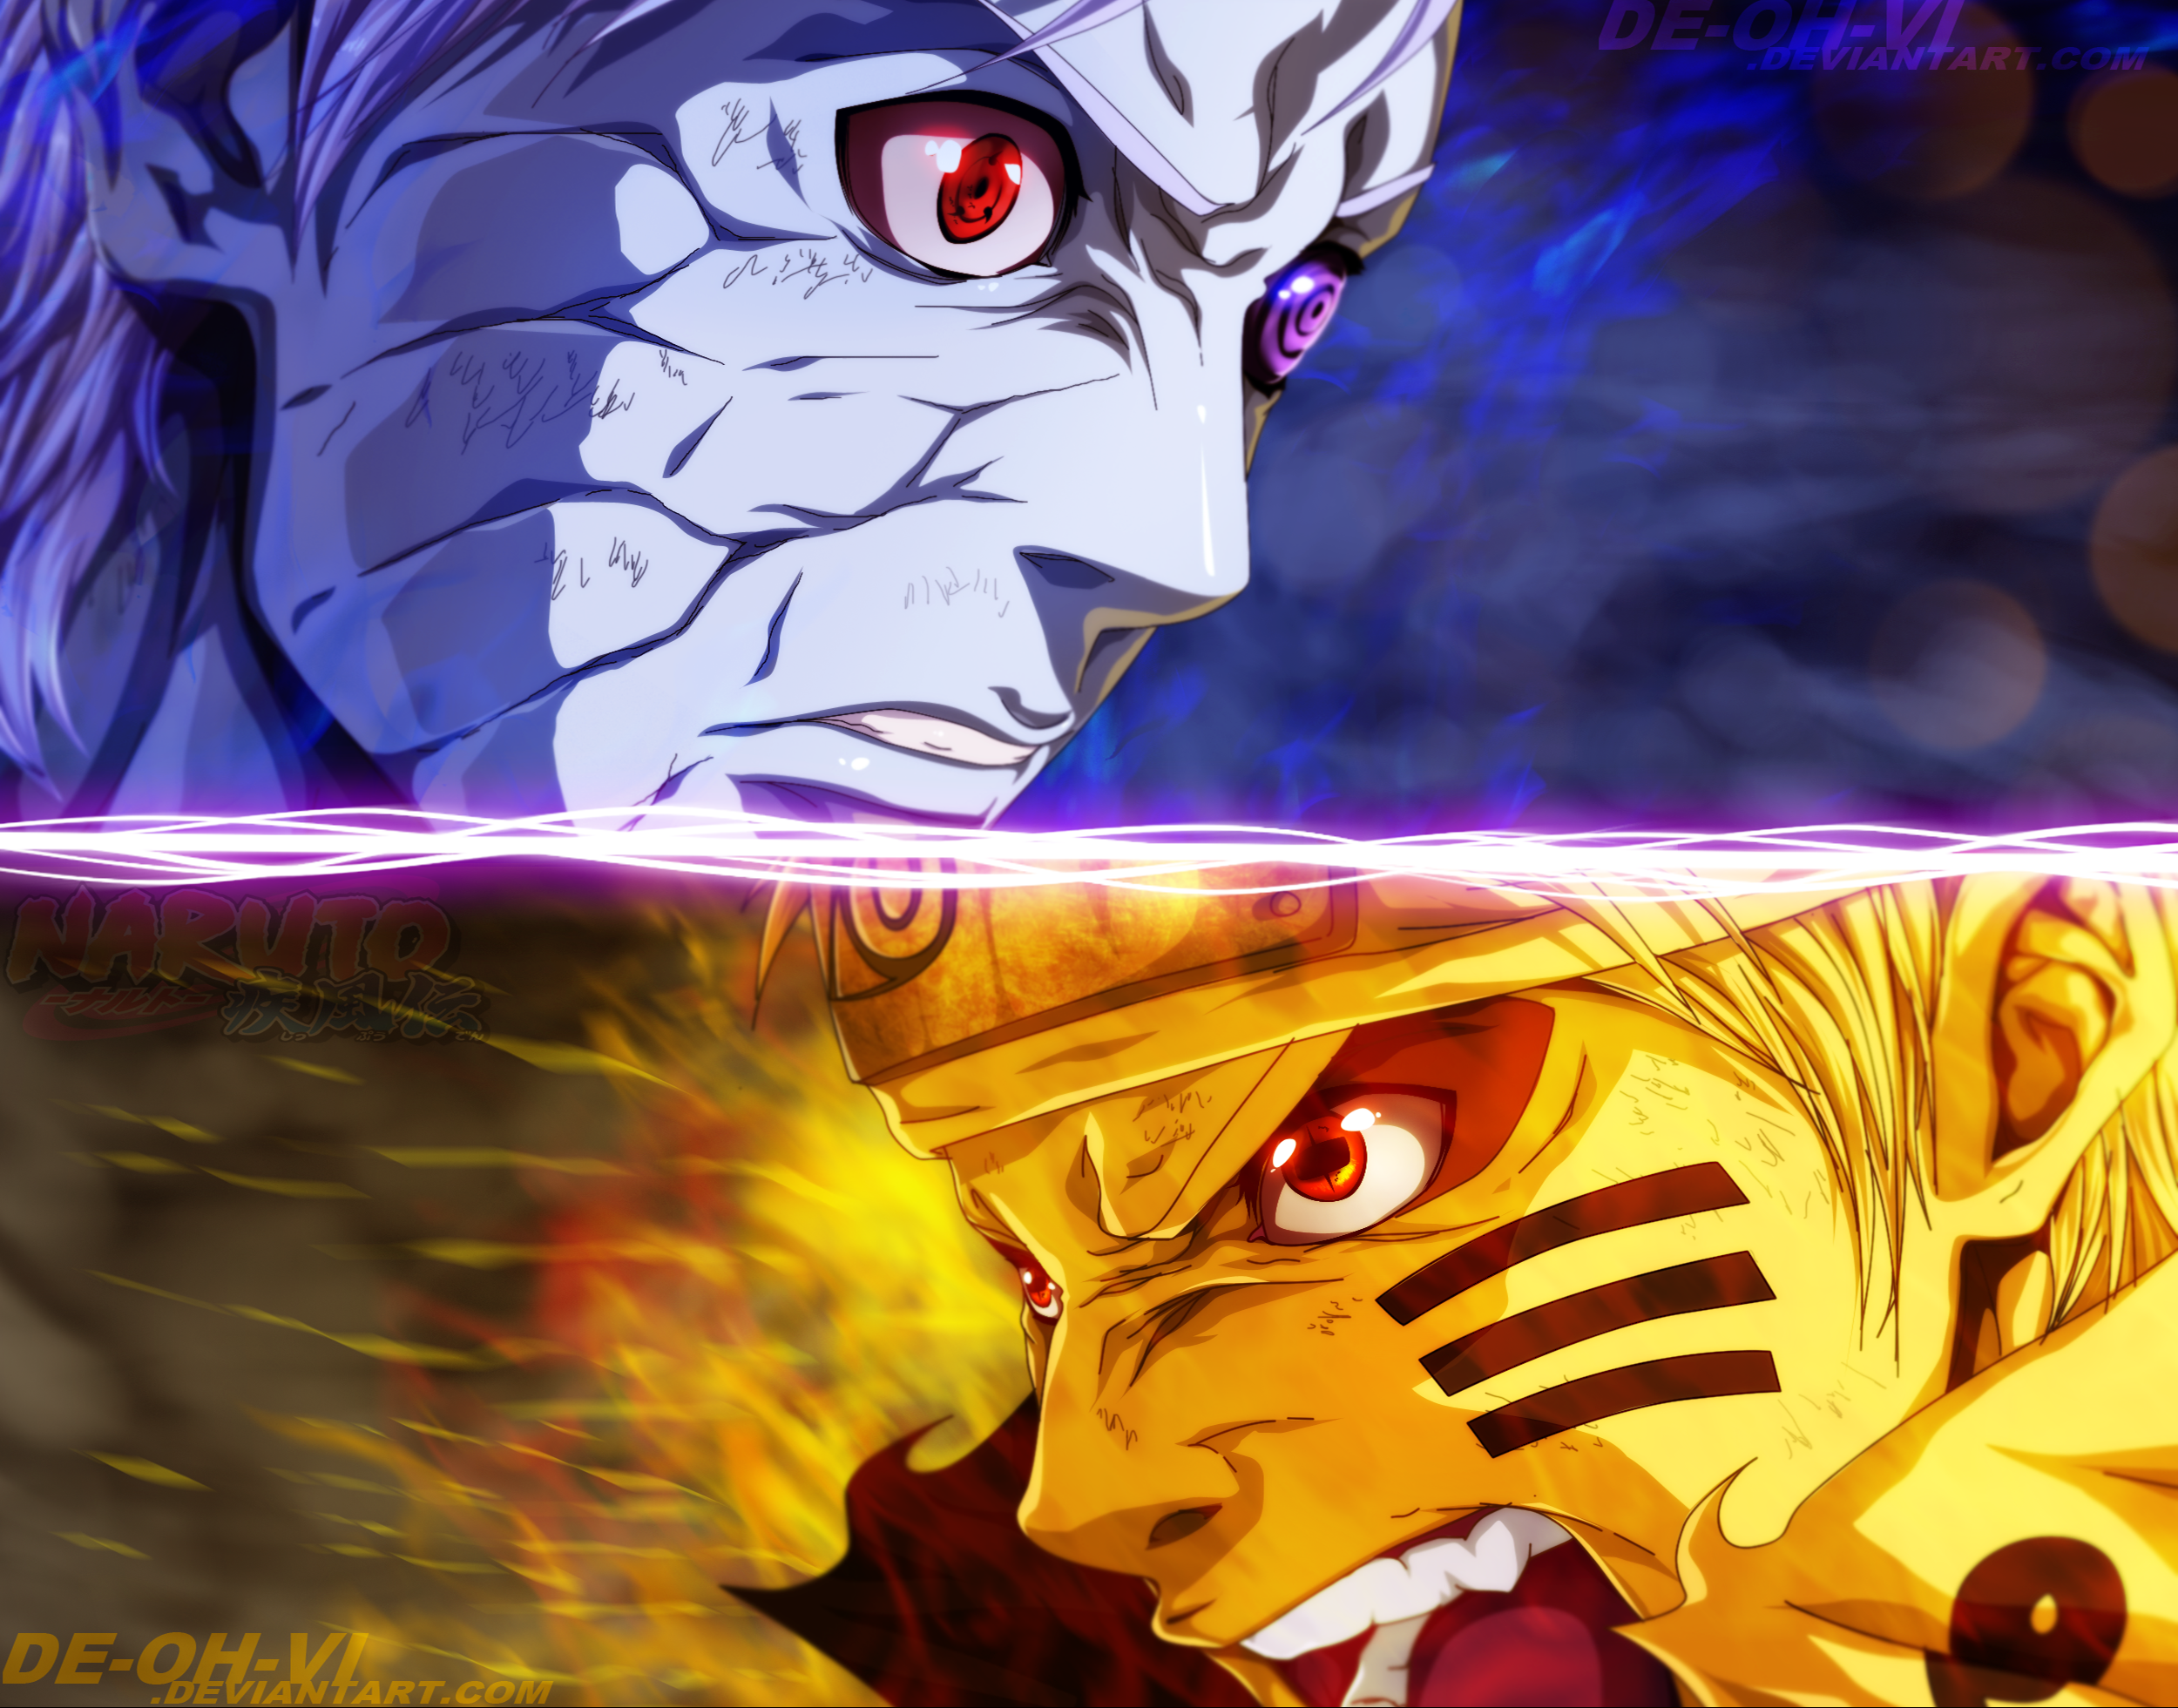 213 Sharingan Naruto Fonds D Ecran Hd Arriere Plans